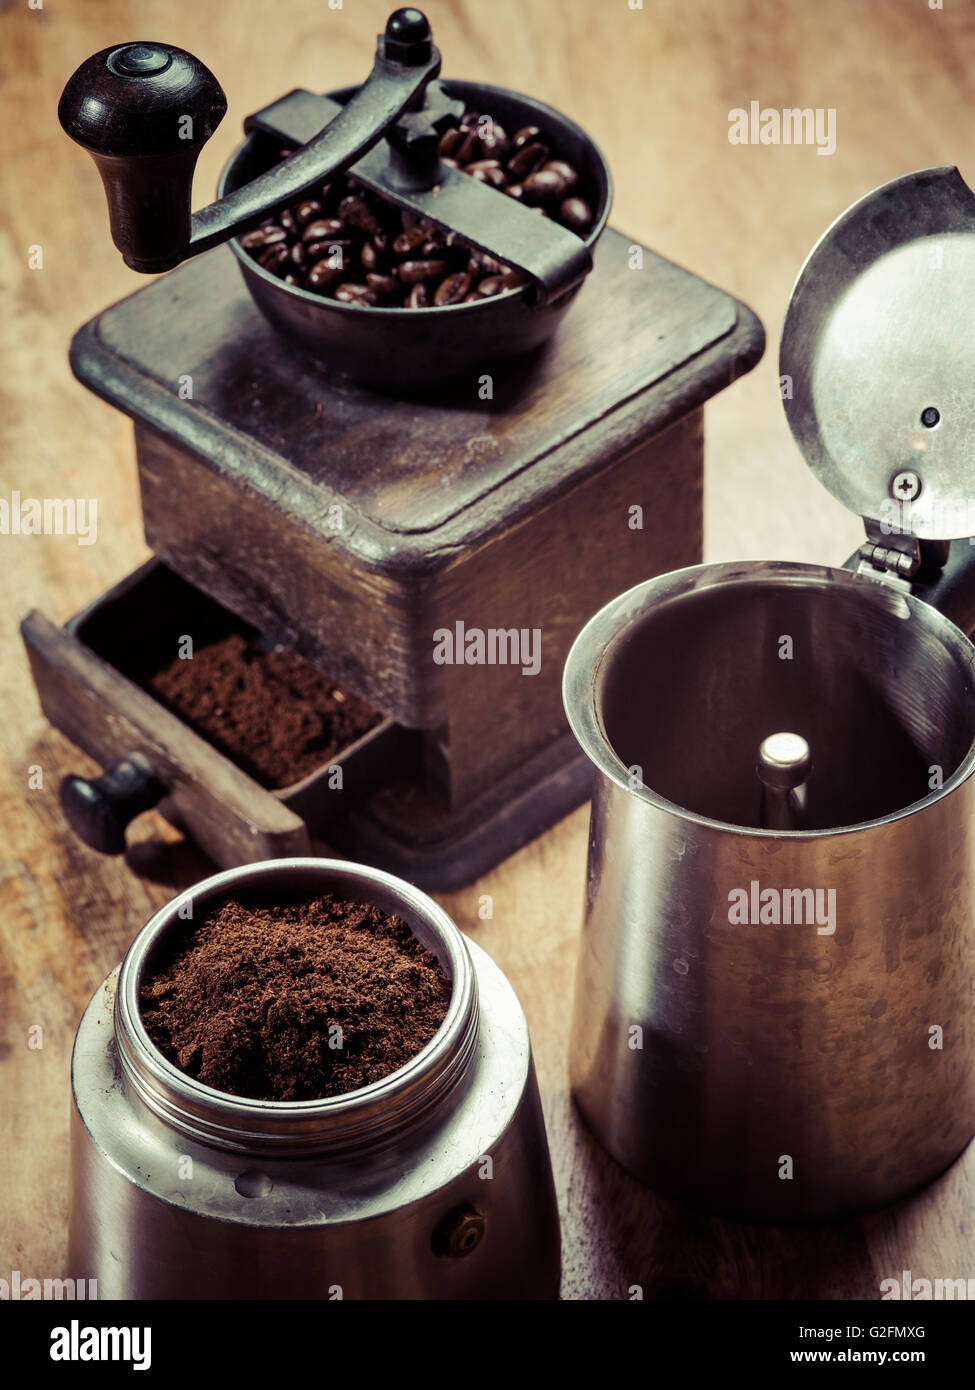 Photo of an Italian Moka Express stovetop coffee maker and a coffee grinder - Stock Image